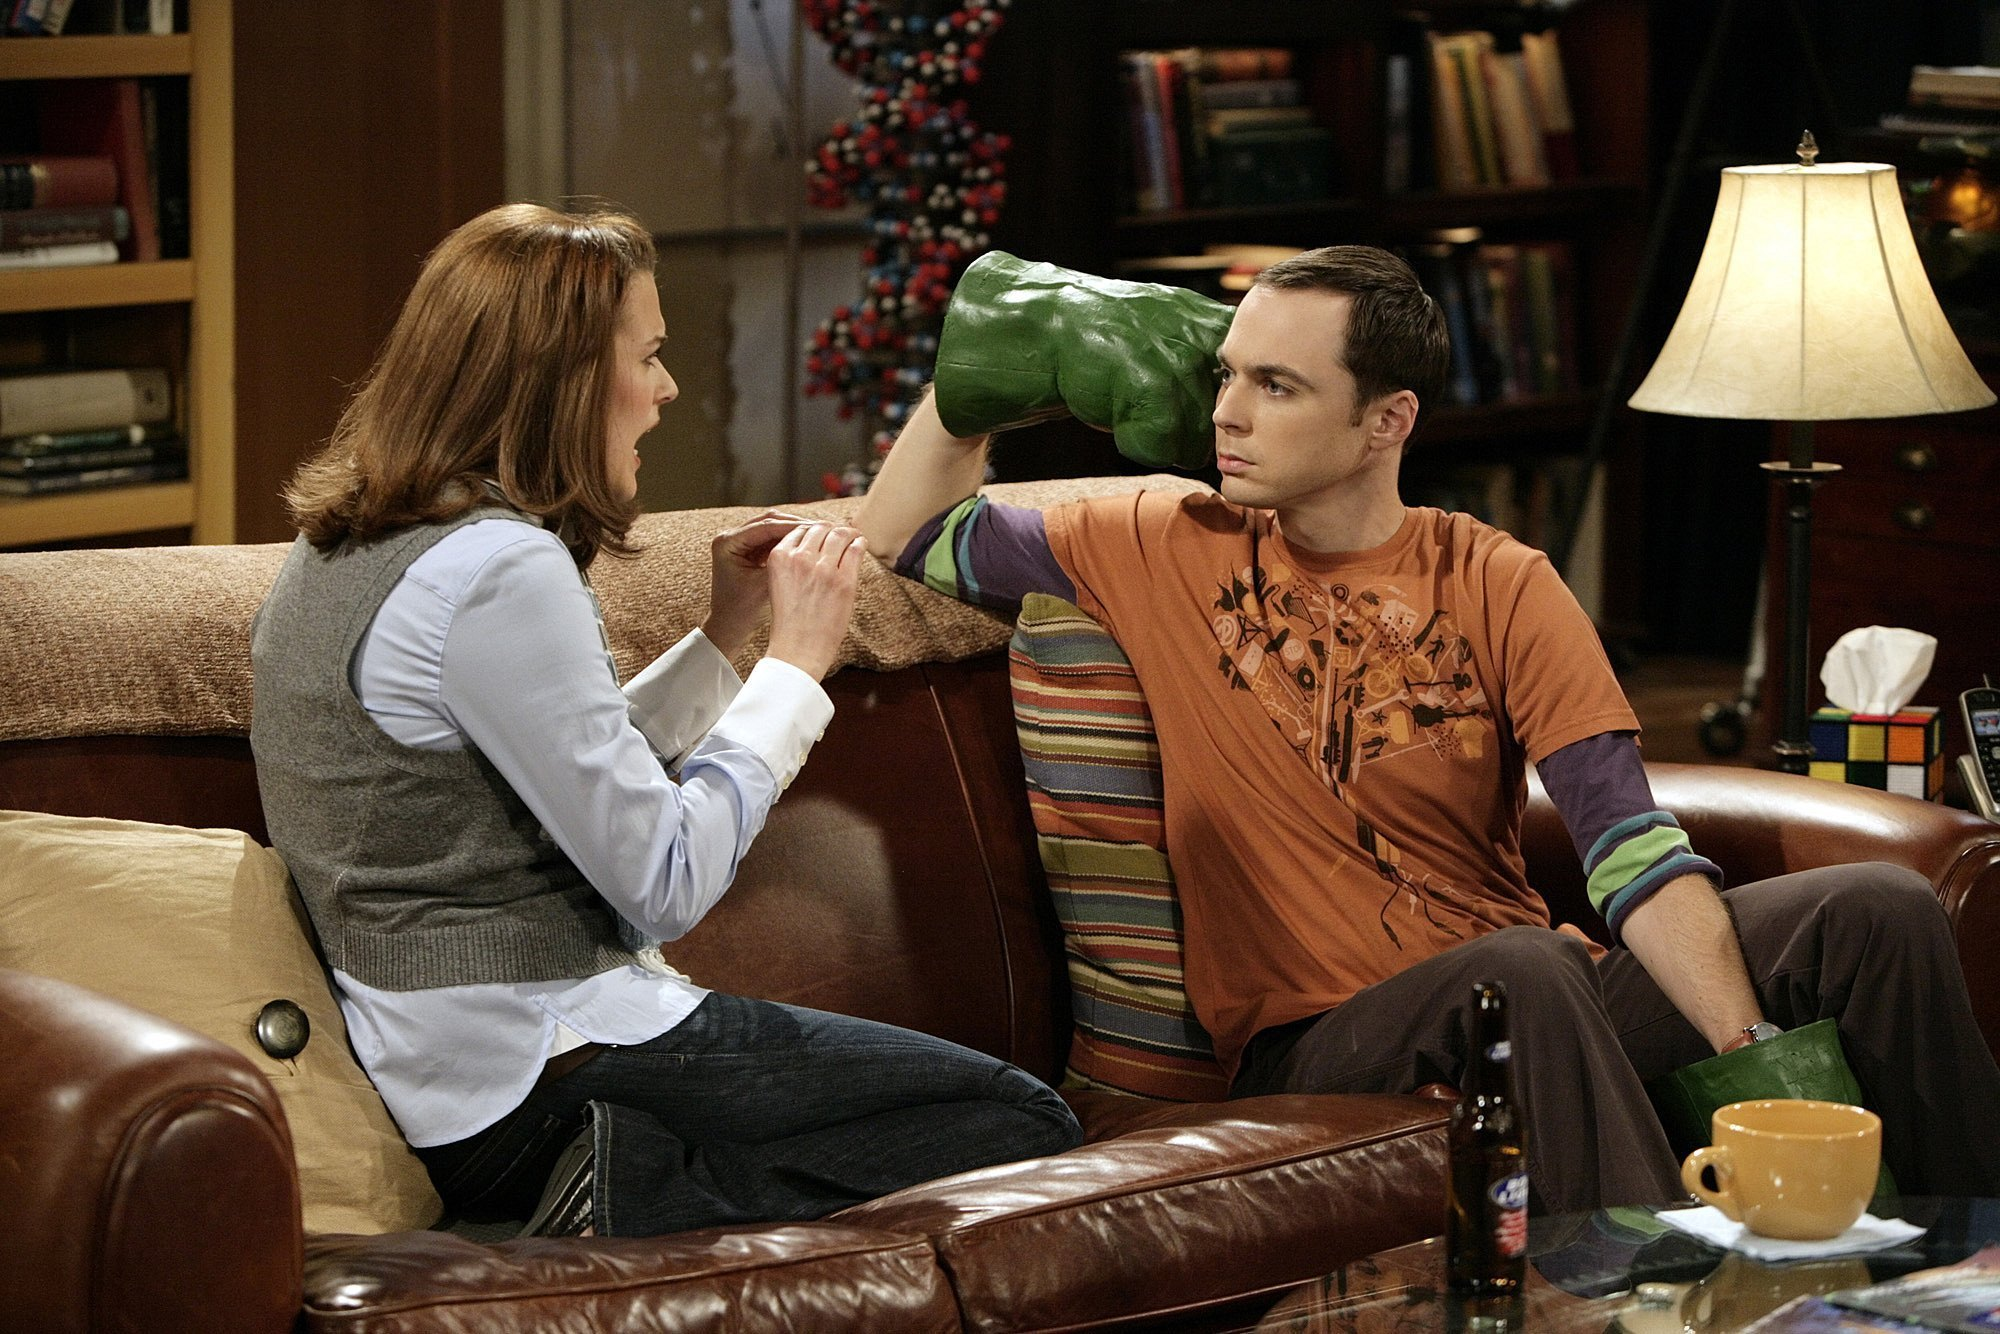 http://images2.fanpop.com/image/photos/9500000/-The-Psychic-Vortex-promo-stills-HQ-sheldon-cooper-9530279-2000-1334.jpg